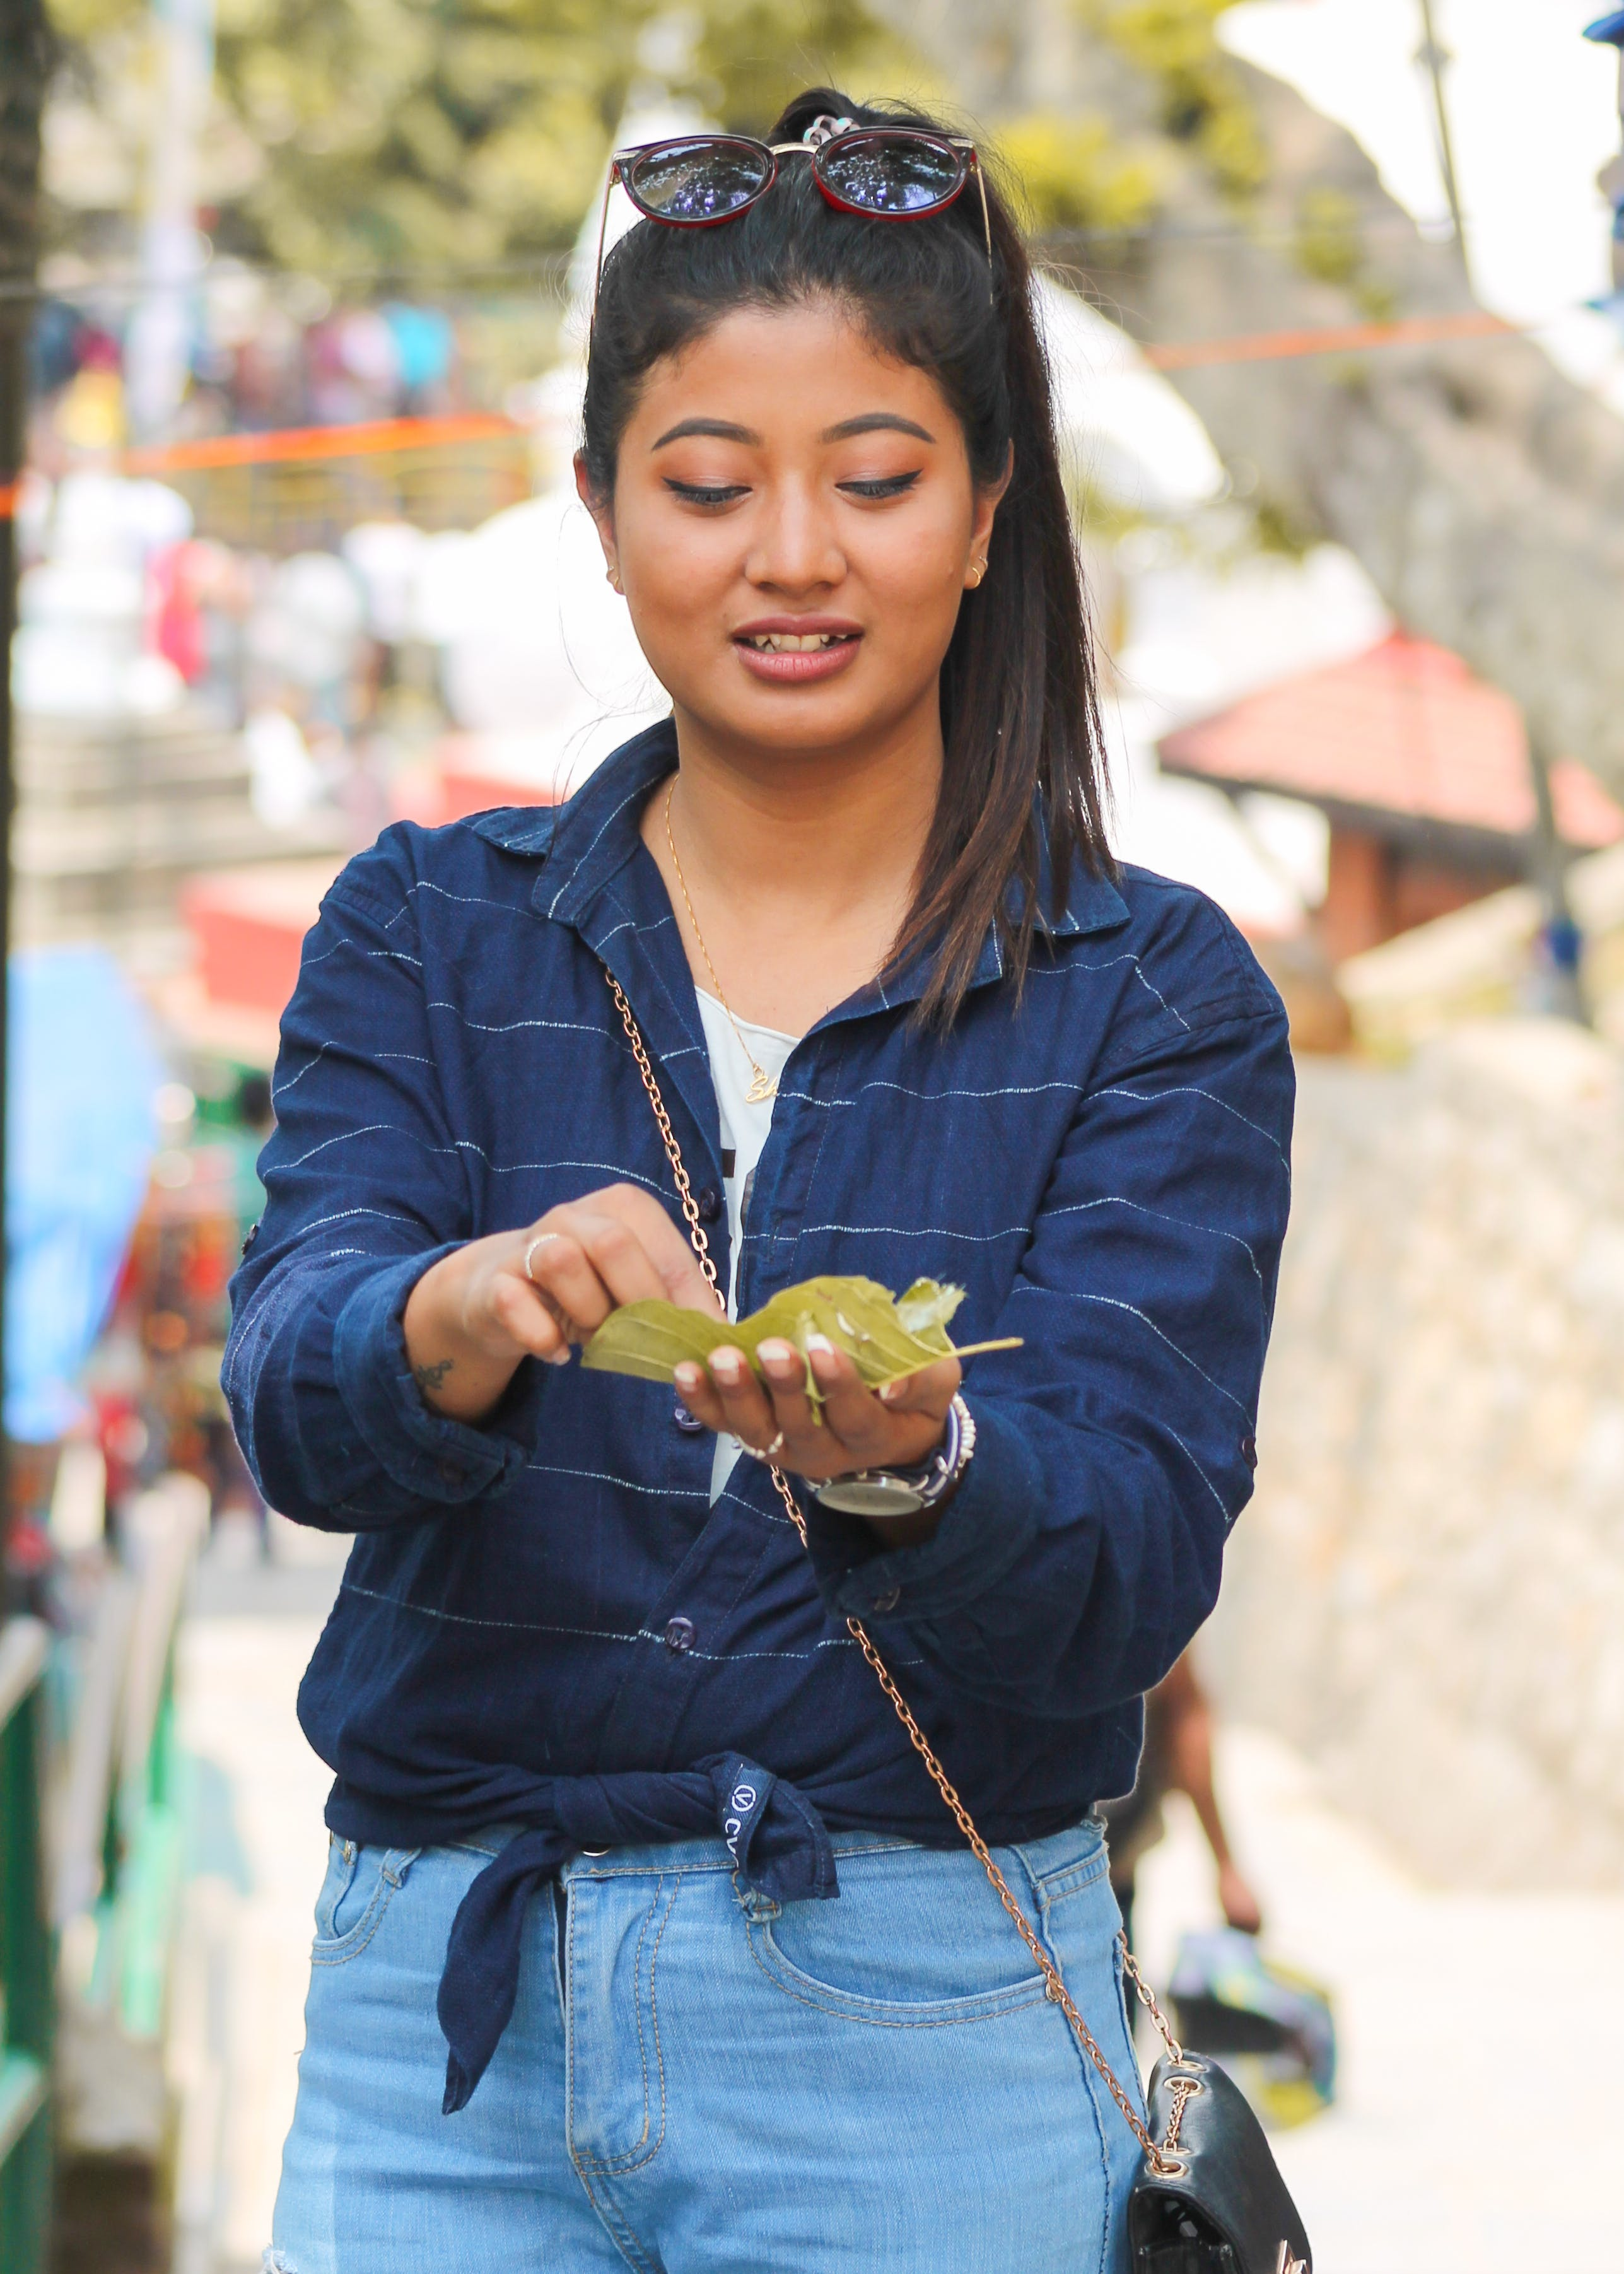 Free stock photo of blue jeans, eating, girl, nepal